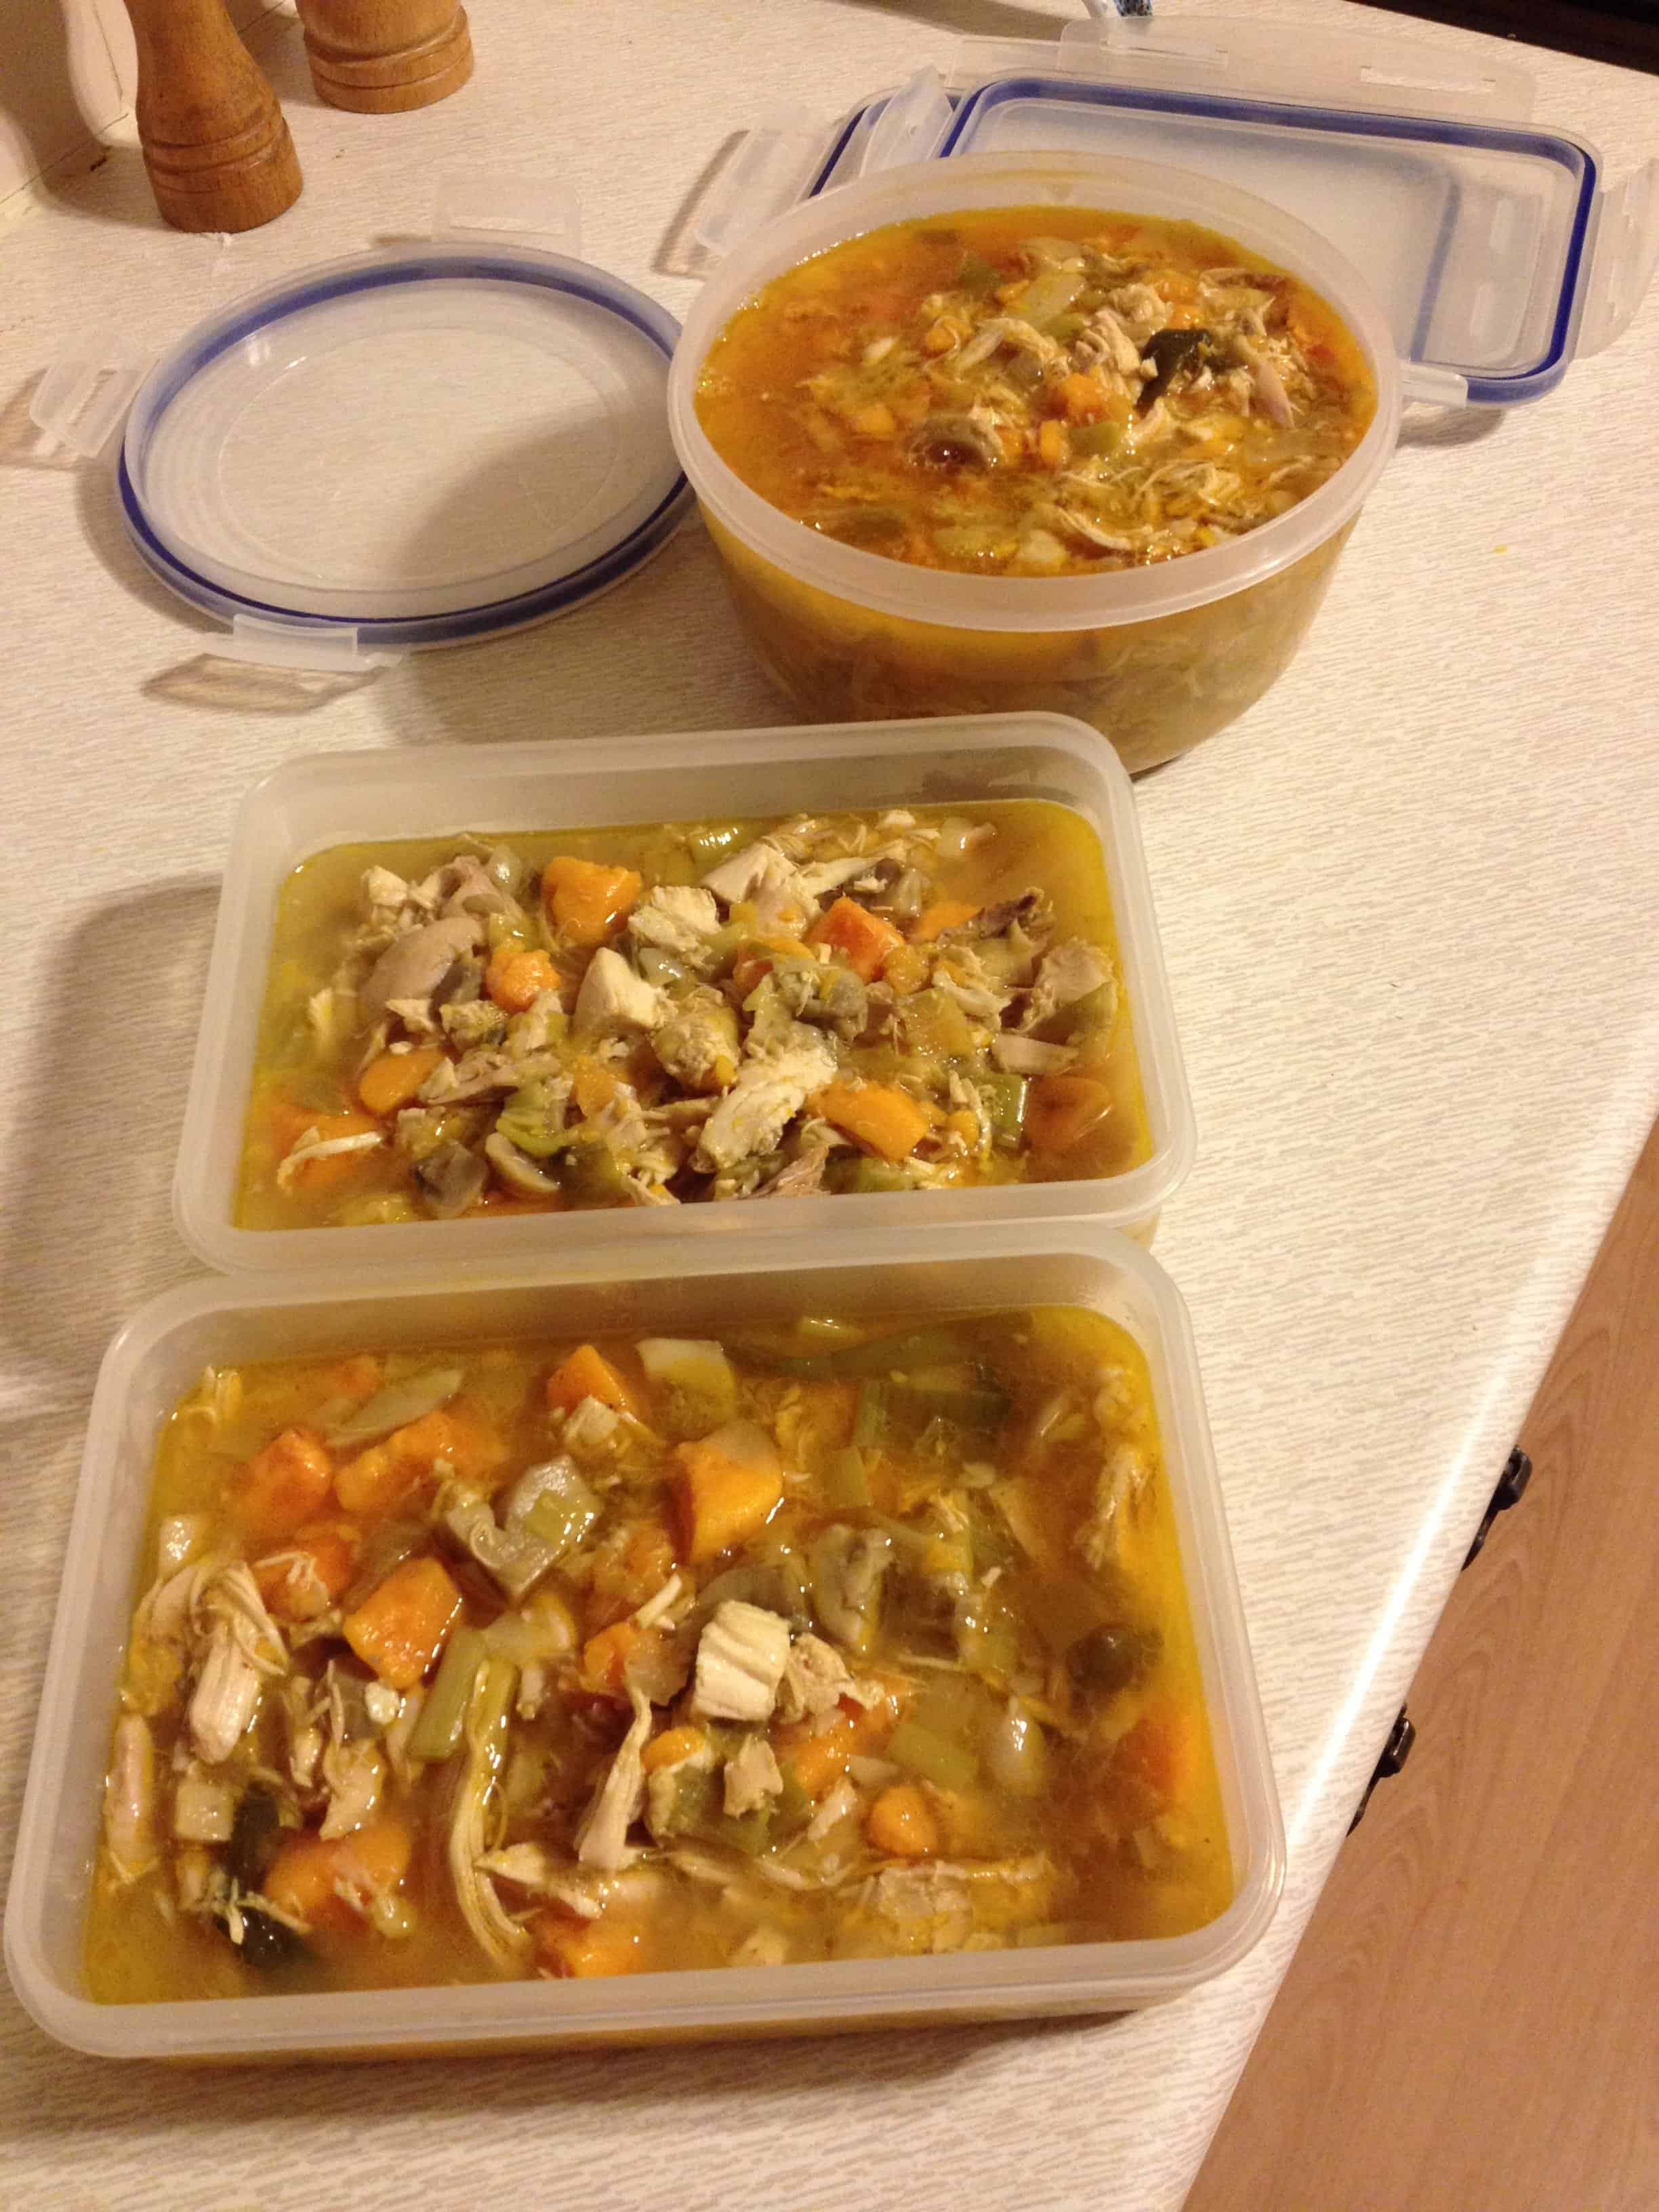 You can portion up the soup and freeze or fridge it!